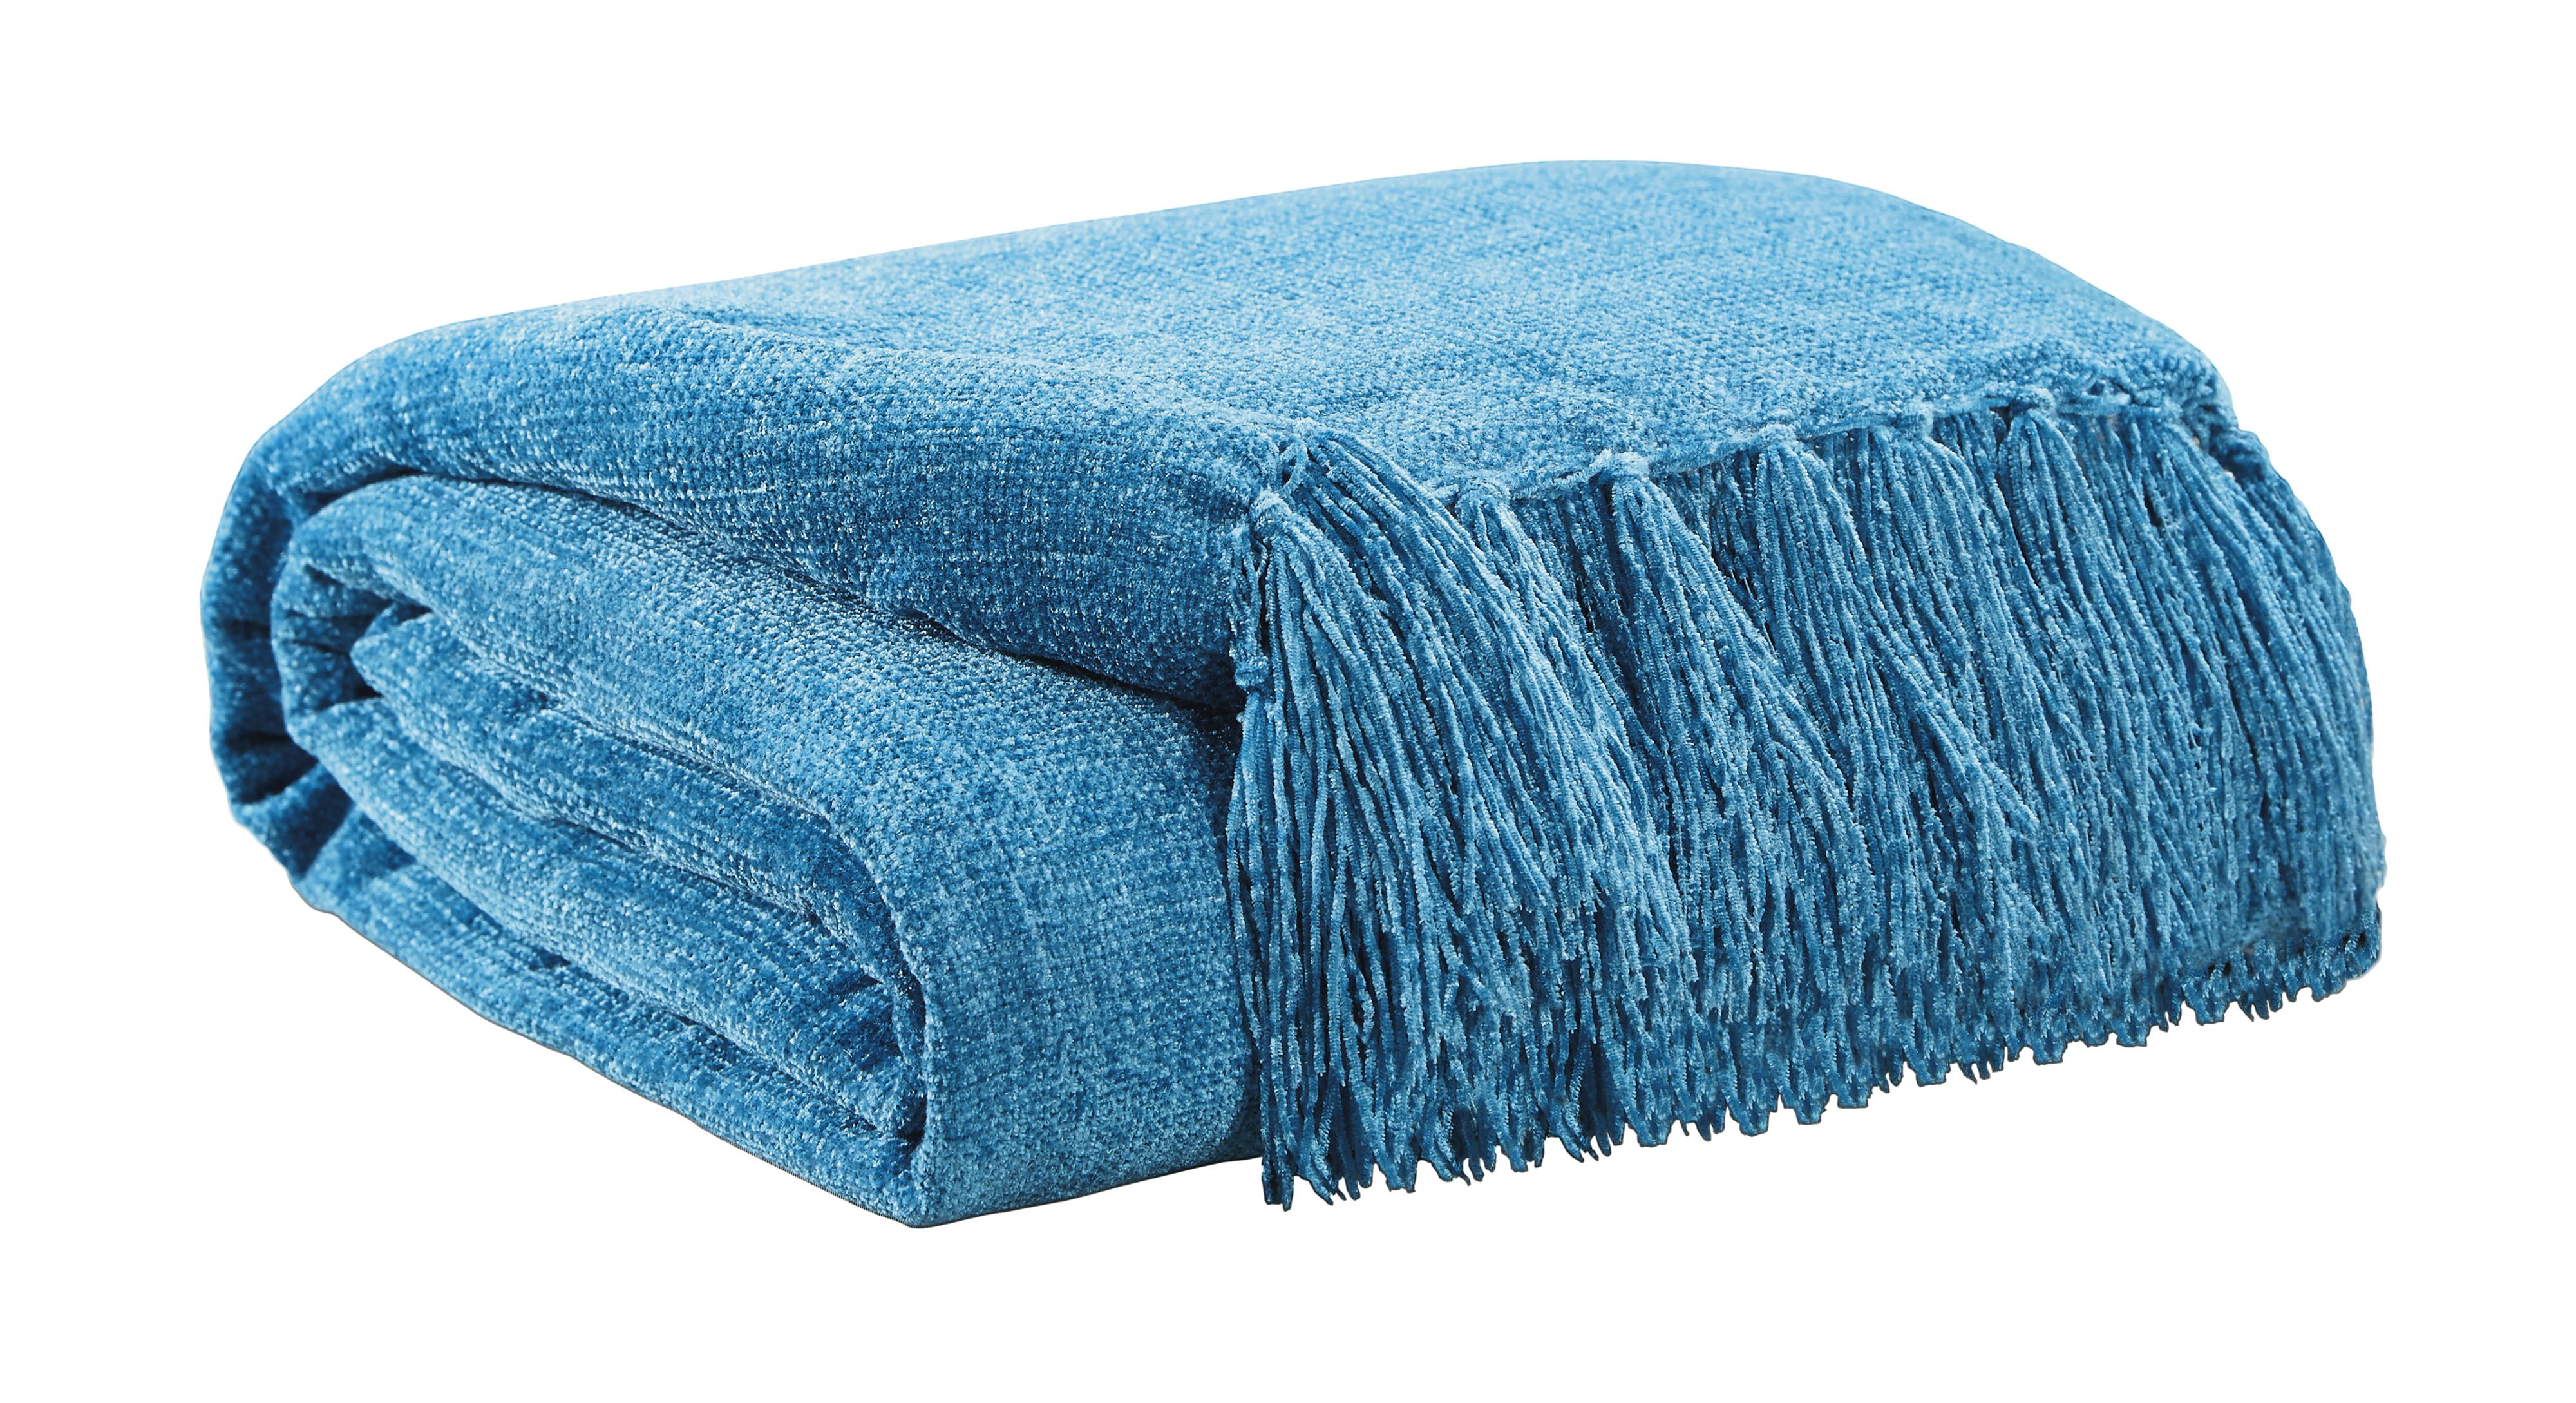 Signature Design by Ashley Throws Danicio - Teal Throw - Item Number: A1000526T